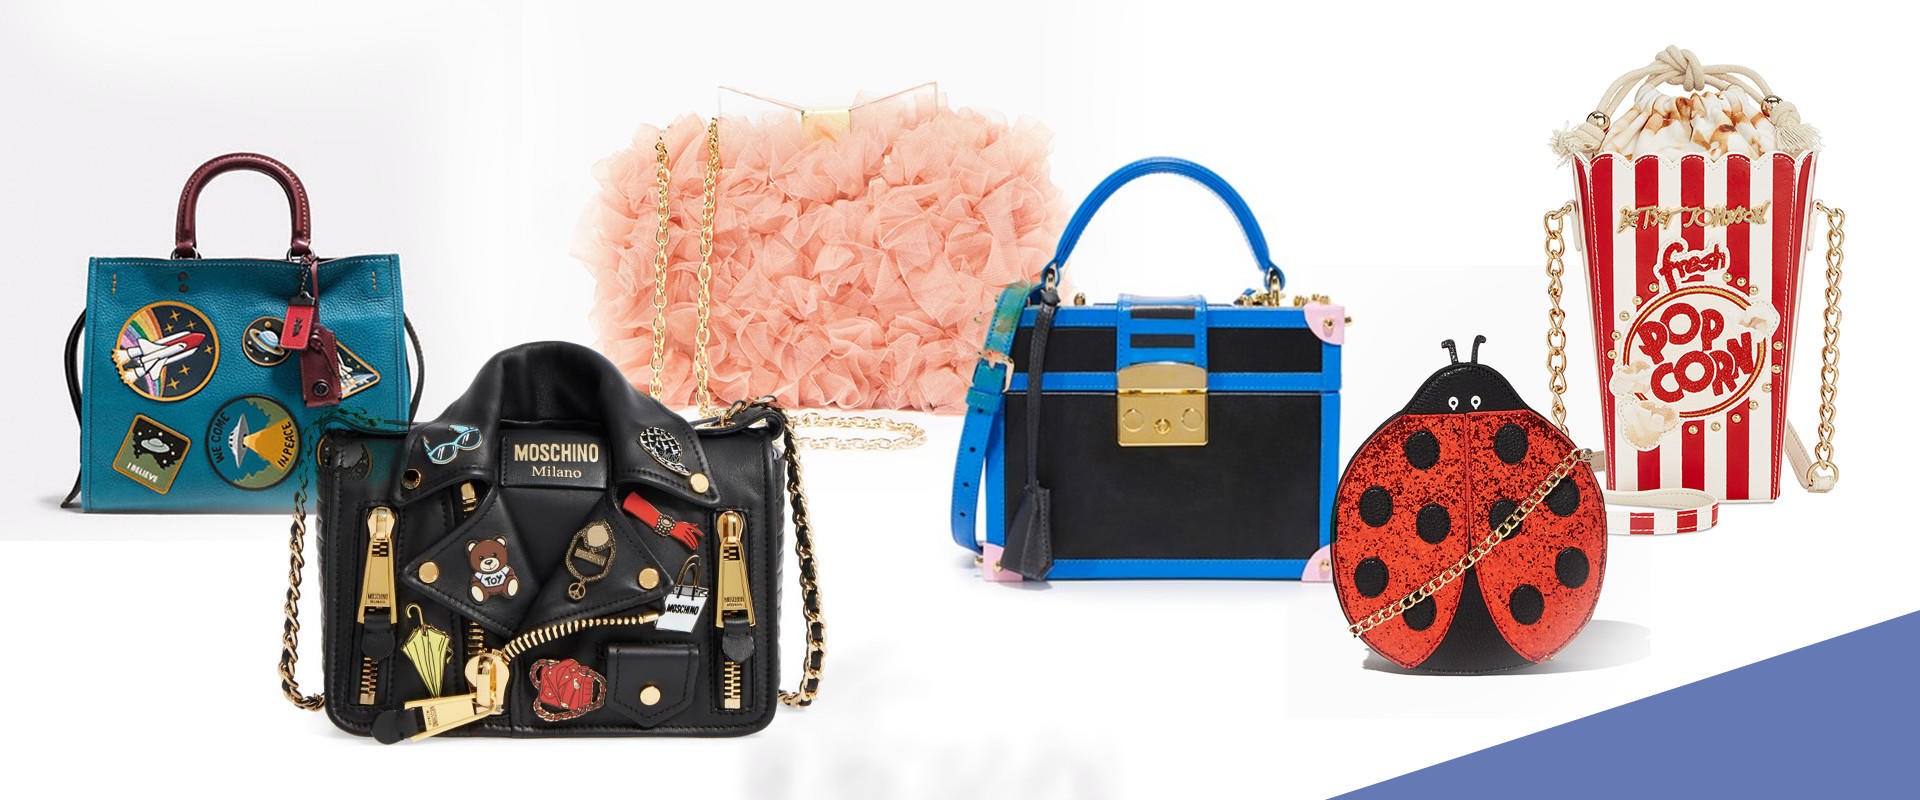 No Need For Chit-Chat: These Statement Bags Will Do All The Talking